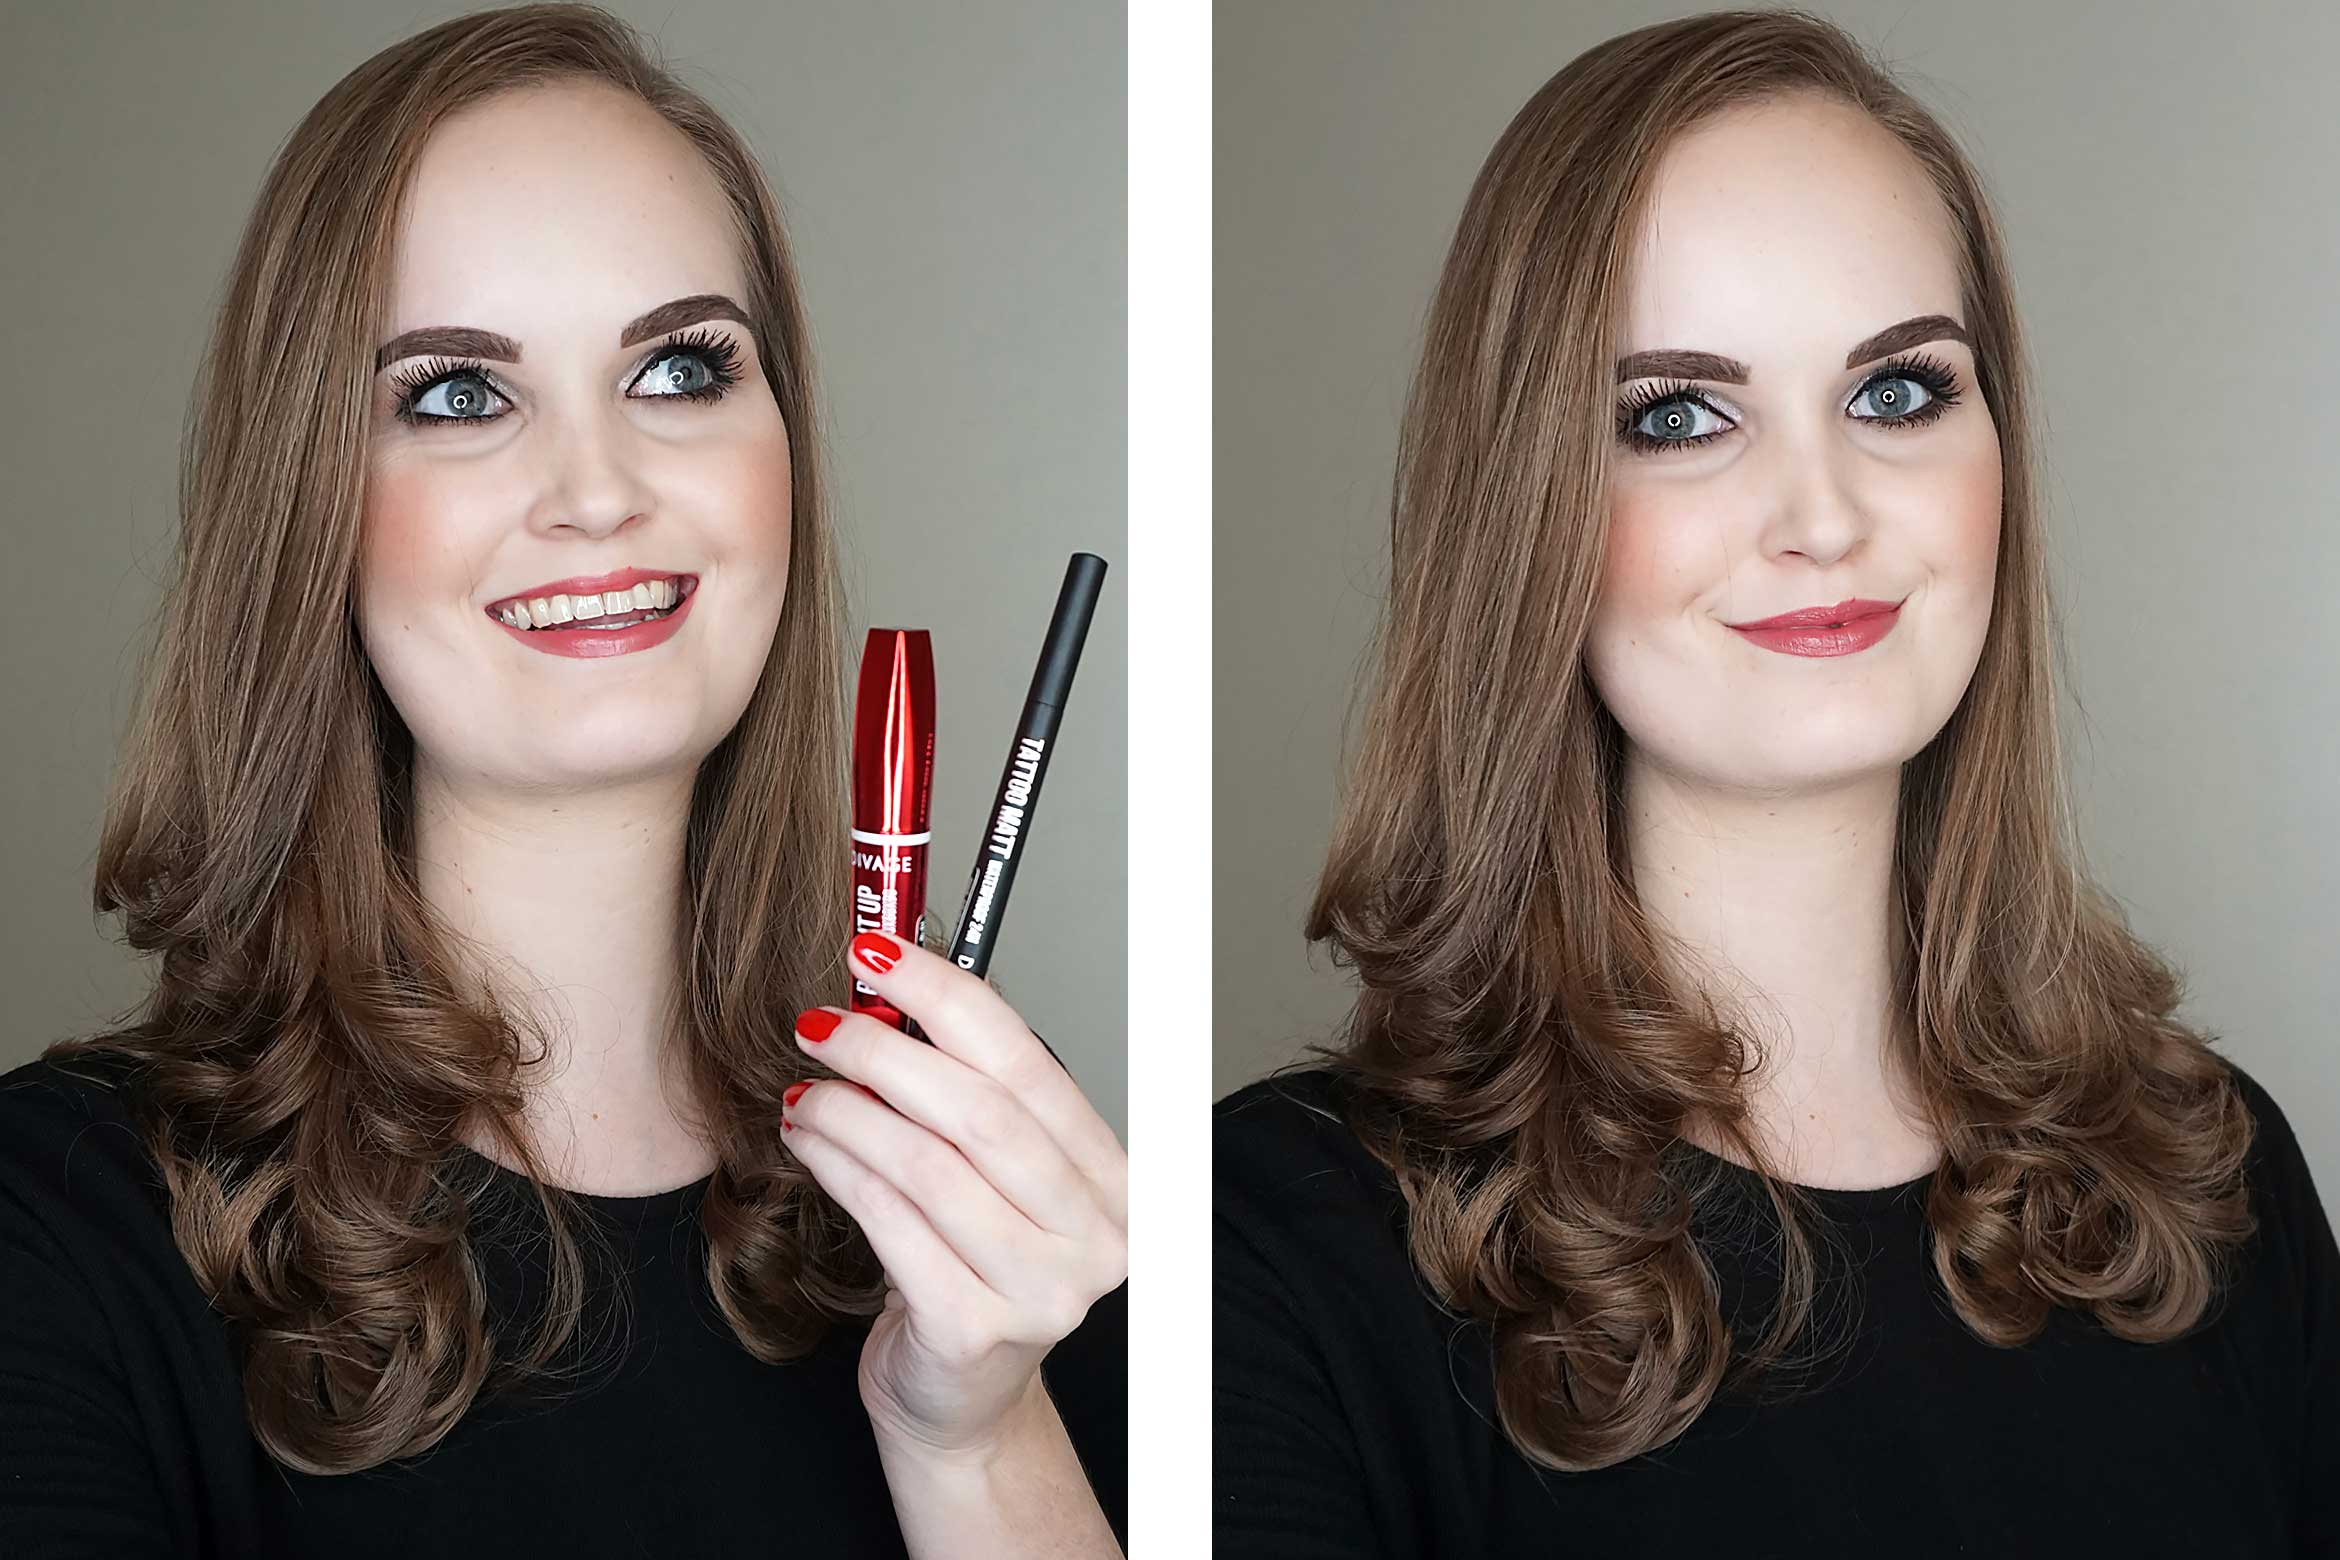 divage-pump-it-up-mascara-review-4